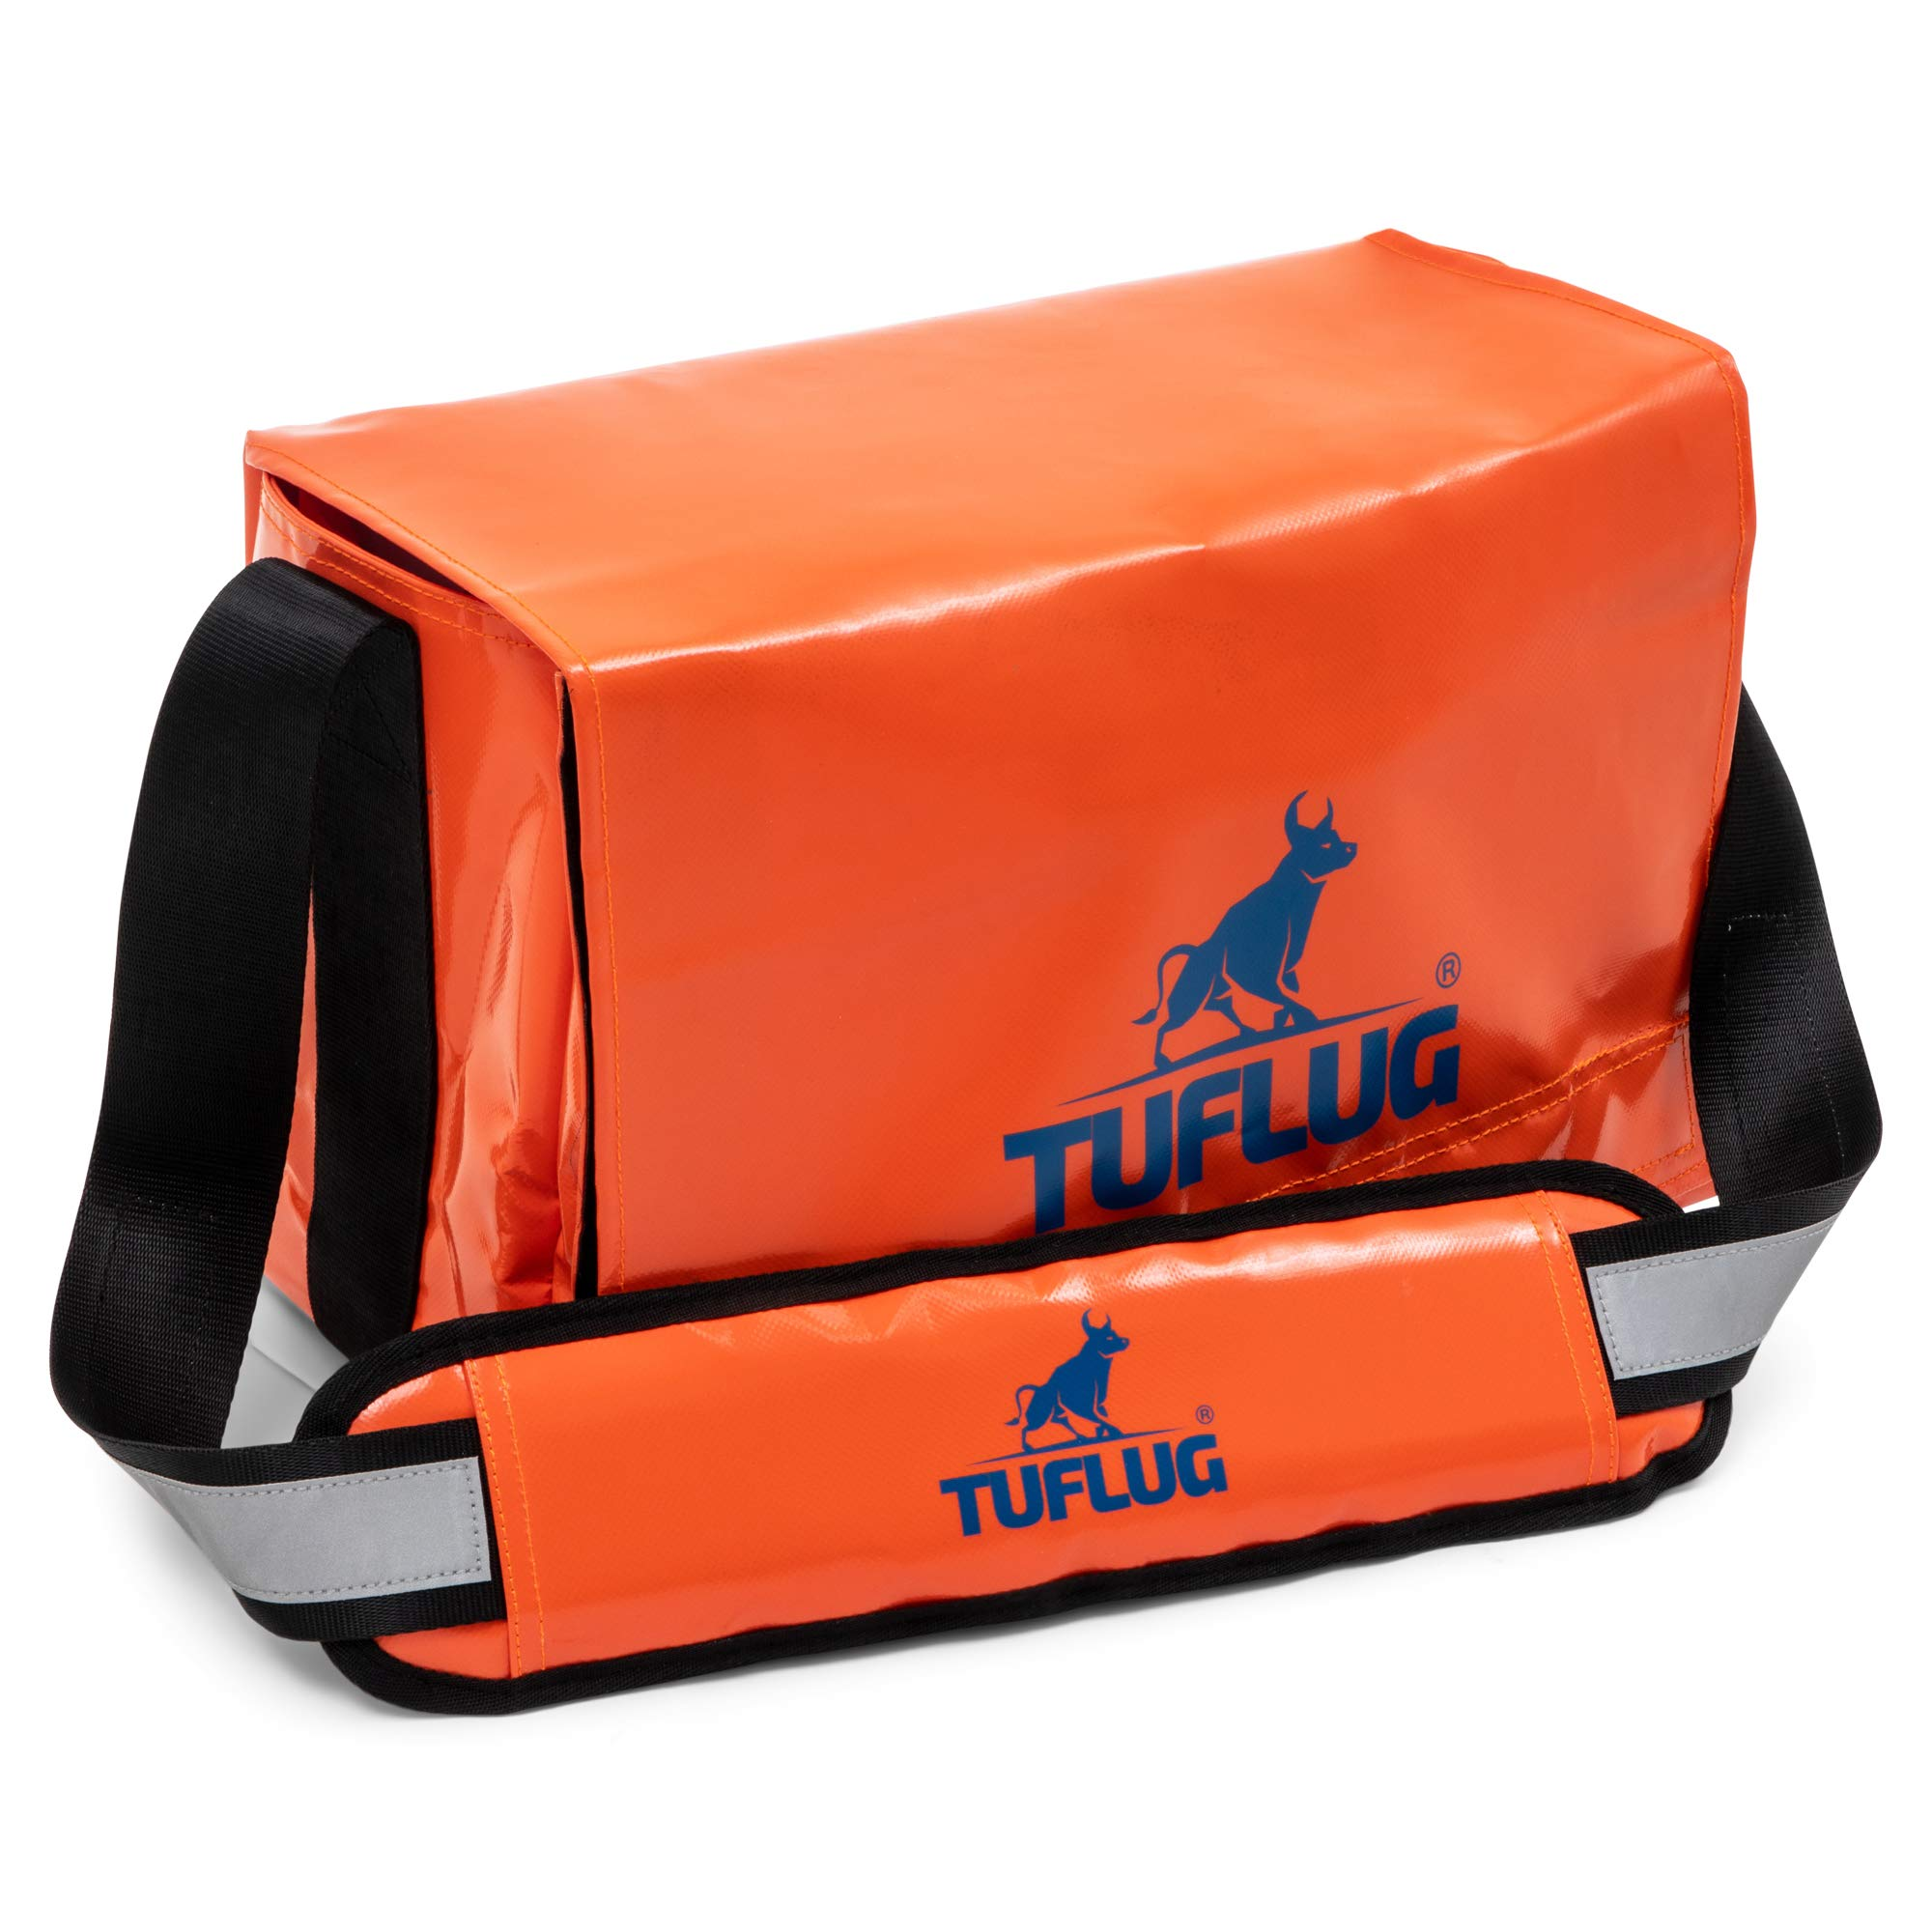 TUFLUG Tool Bag Organizer with Shoulder Strap, Orange, 14.5 x 9.5 x 8 inches   Heavy-Duty   Water-Resistant Equipment Bag for Carpenters, Electricians   Large Tool Caddy for Construction